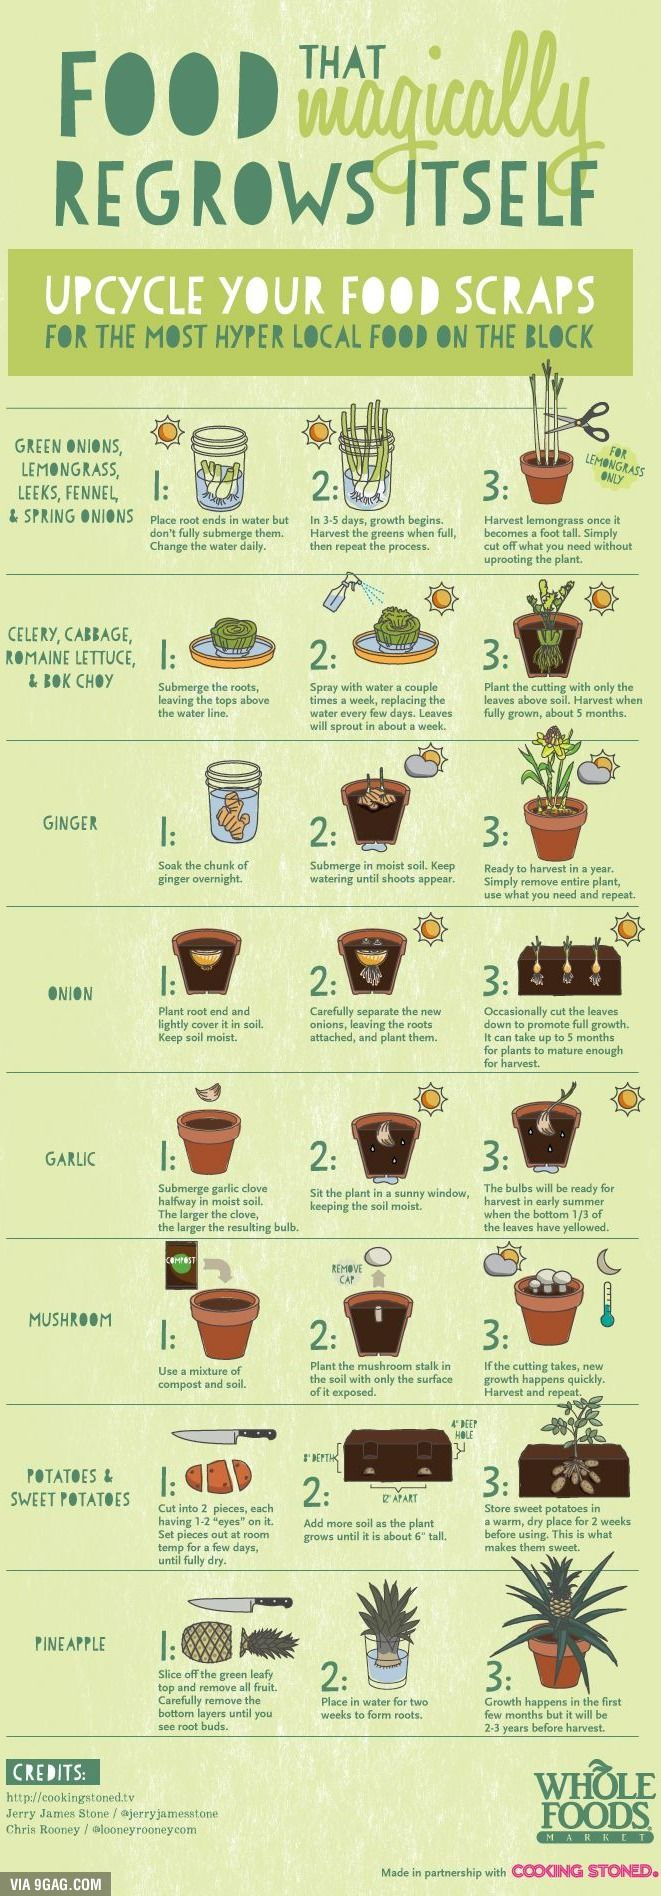 best oh jars images on pinterest diy crafts and decorations